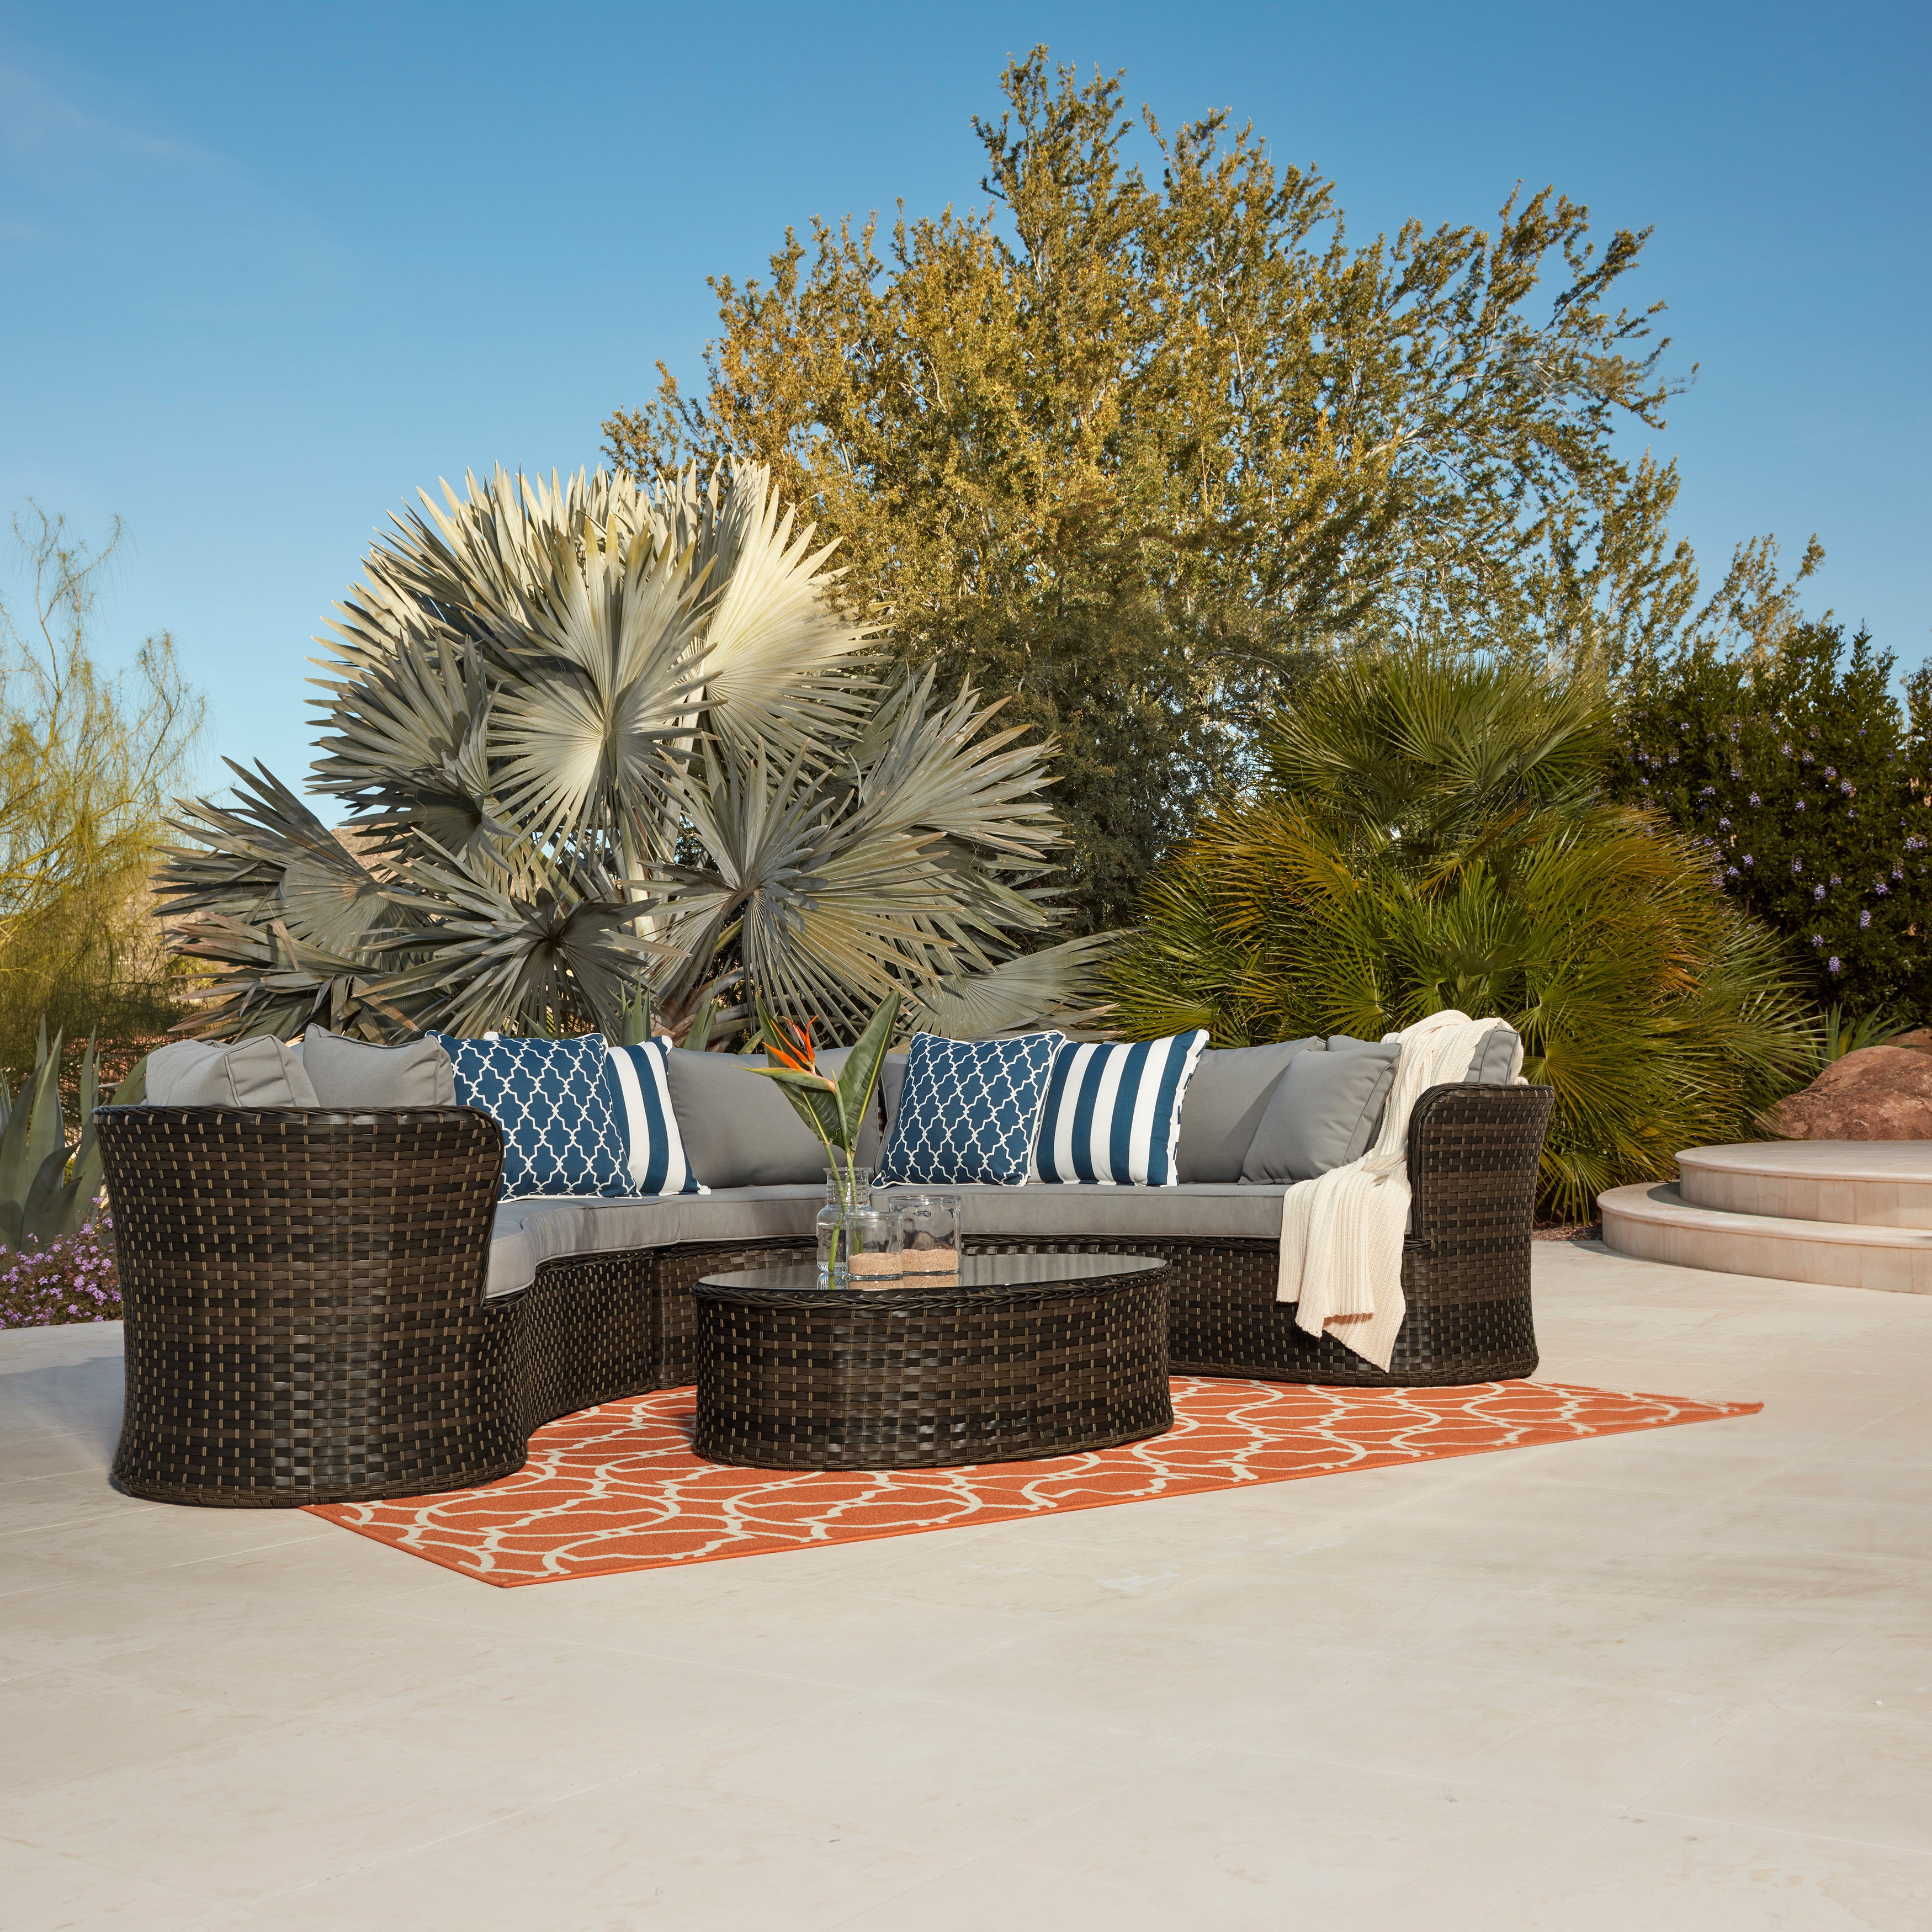 Most Recent Havenside Home Falmouth 4 Piece Sofa Set Intended For Falmouth Patio Sofas With Cushions (View 14 of 20)